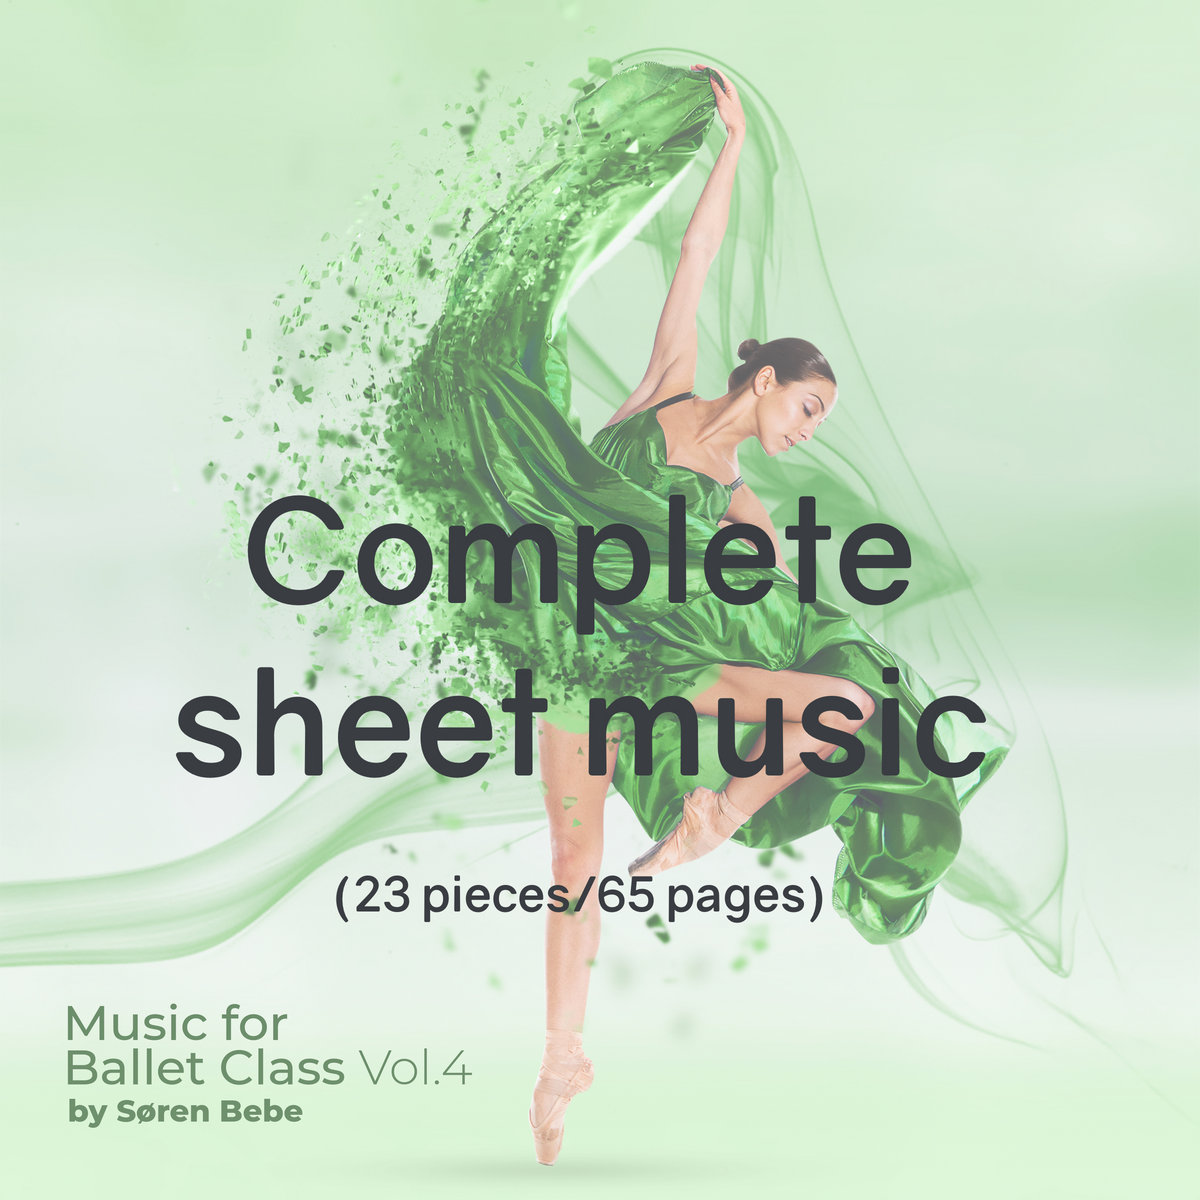 Complete Sheet Music For Music For Ballet Class Vol 4 By Søren Bebe 23 Pieces 65 Pages Søren Bebe